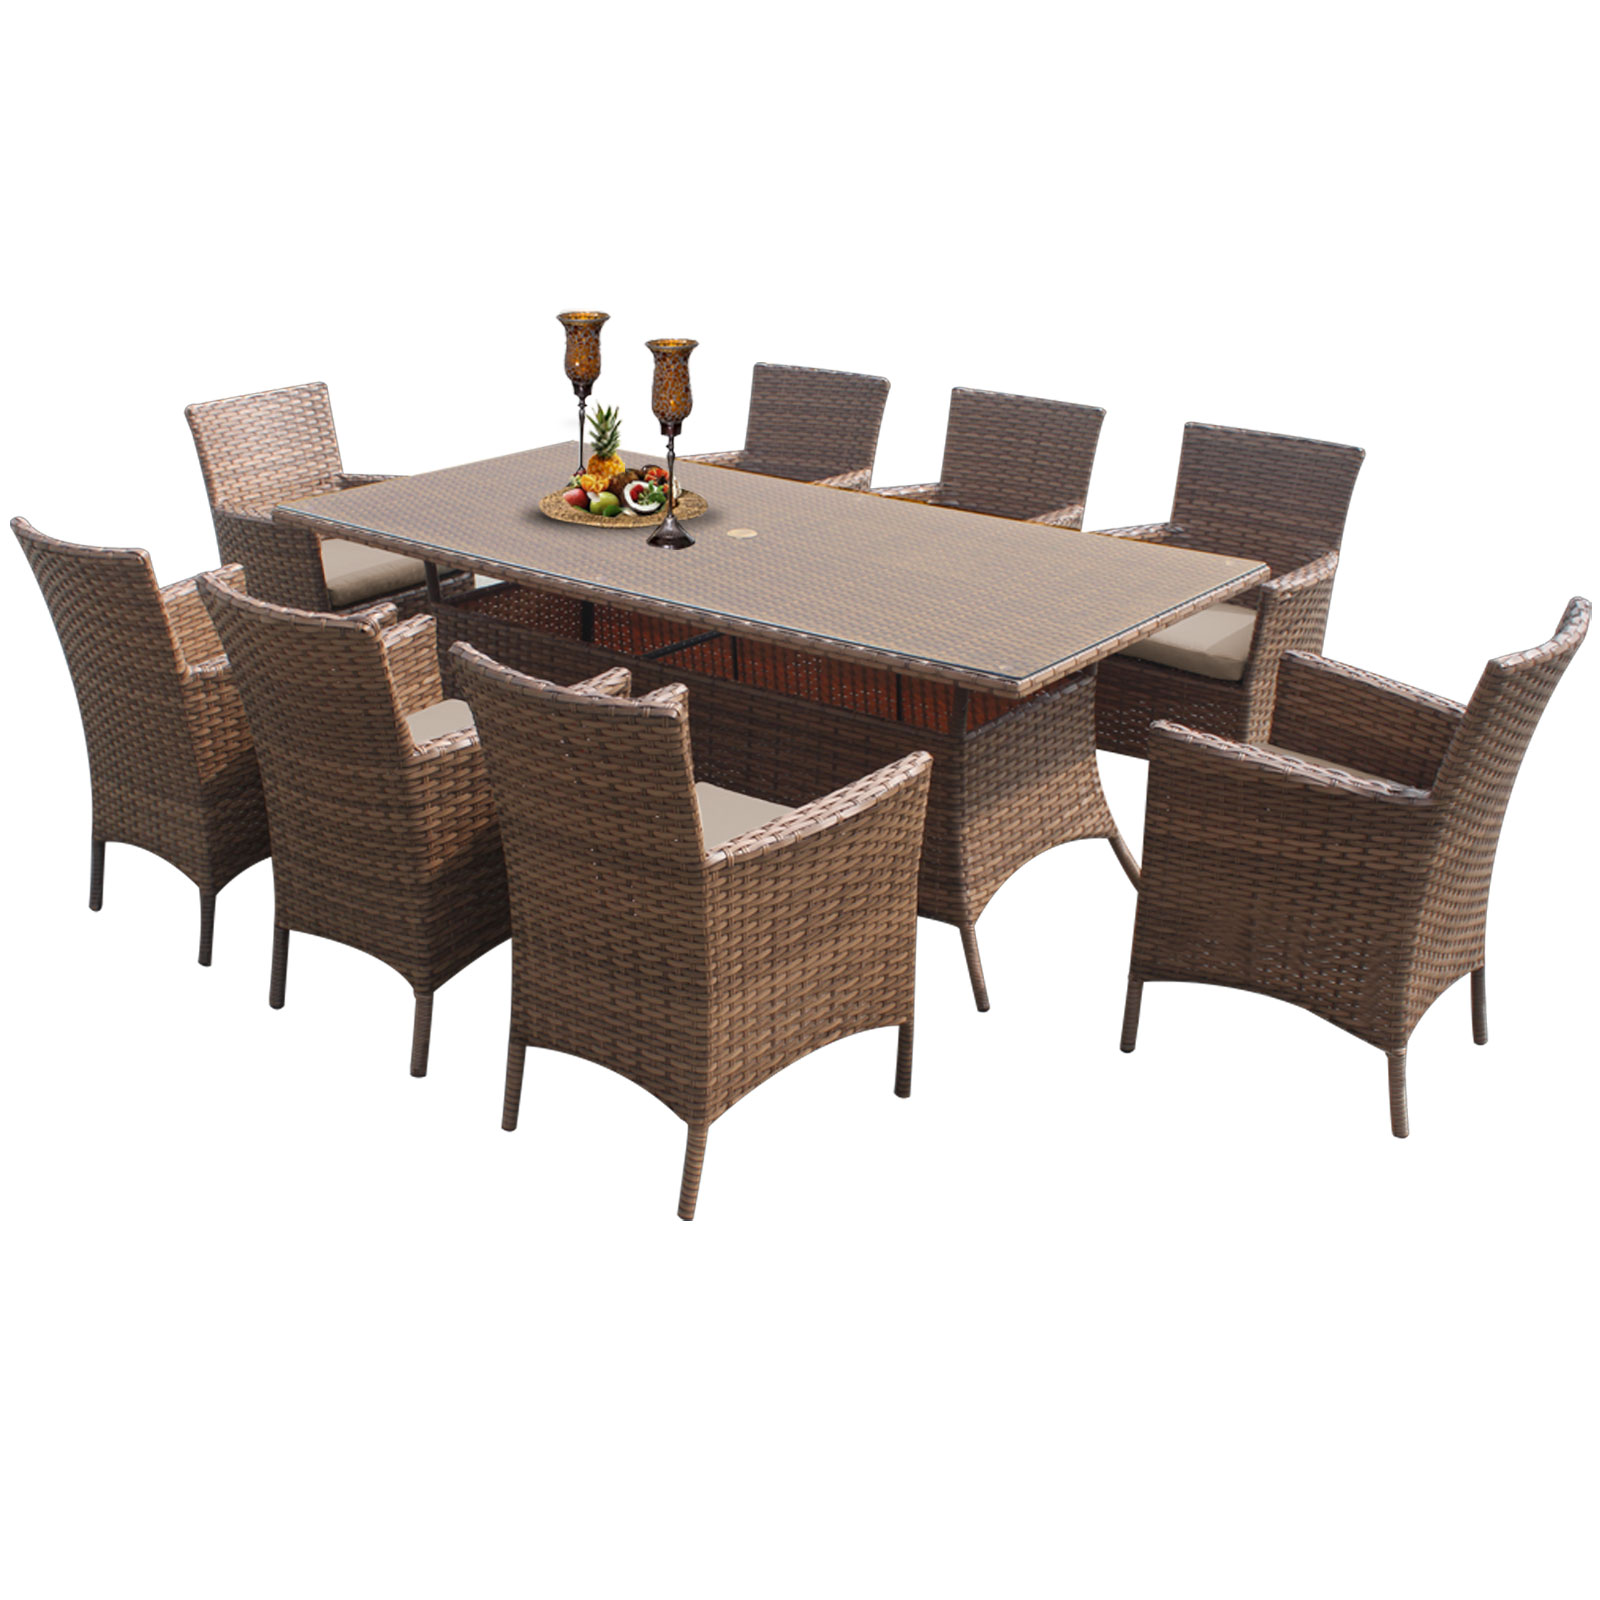 Tuscan Rectangle Dining Table With 8 Chairs